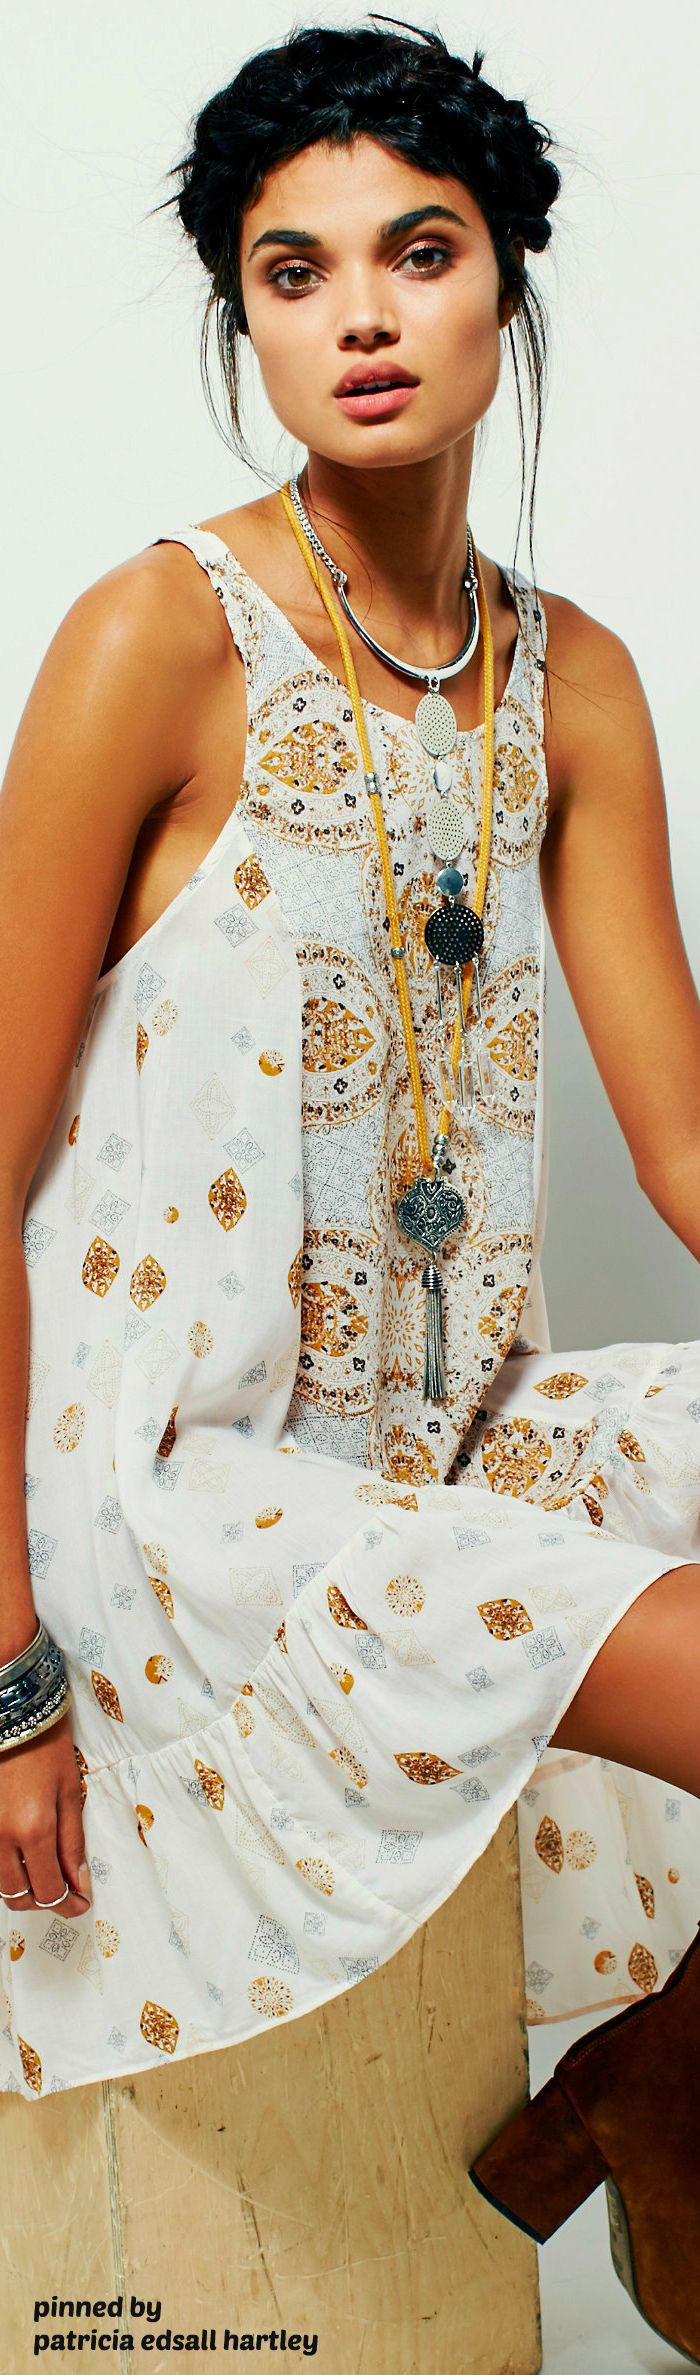 Club z collection maxi dress rue